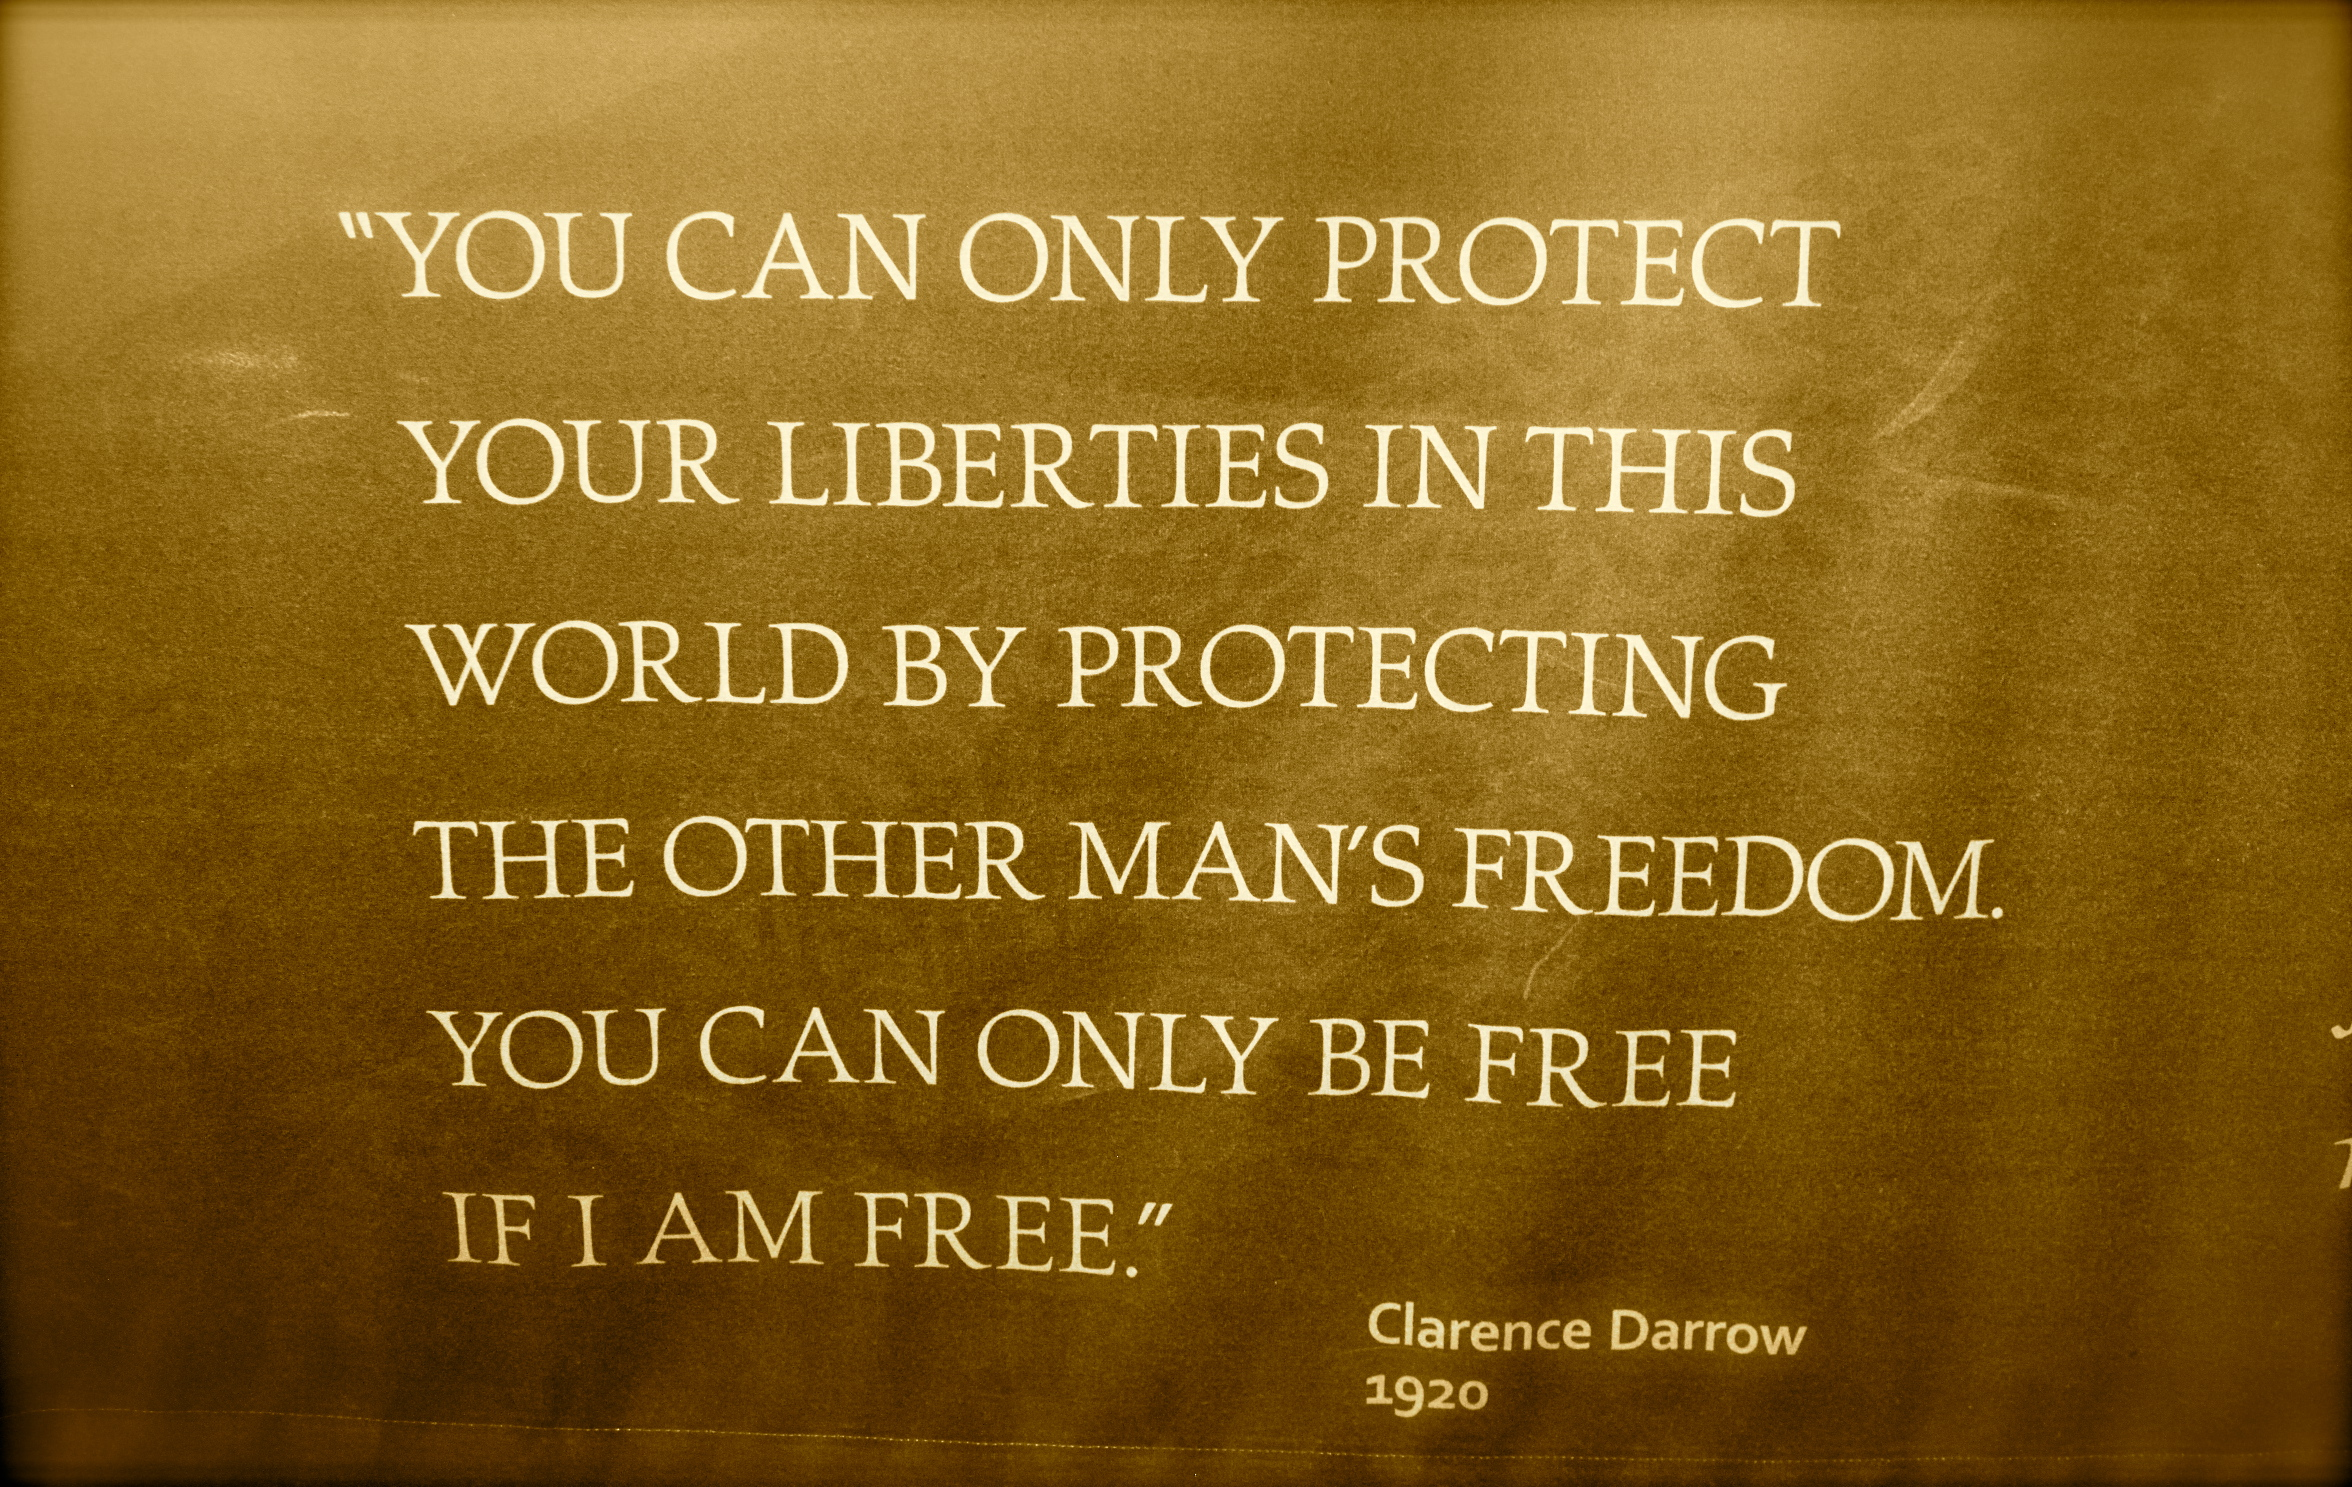 This Clarence Darrow quote from the visitor center stuck with me.  So true.